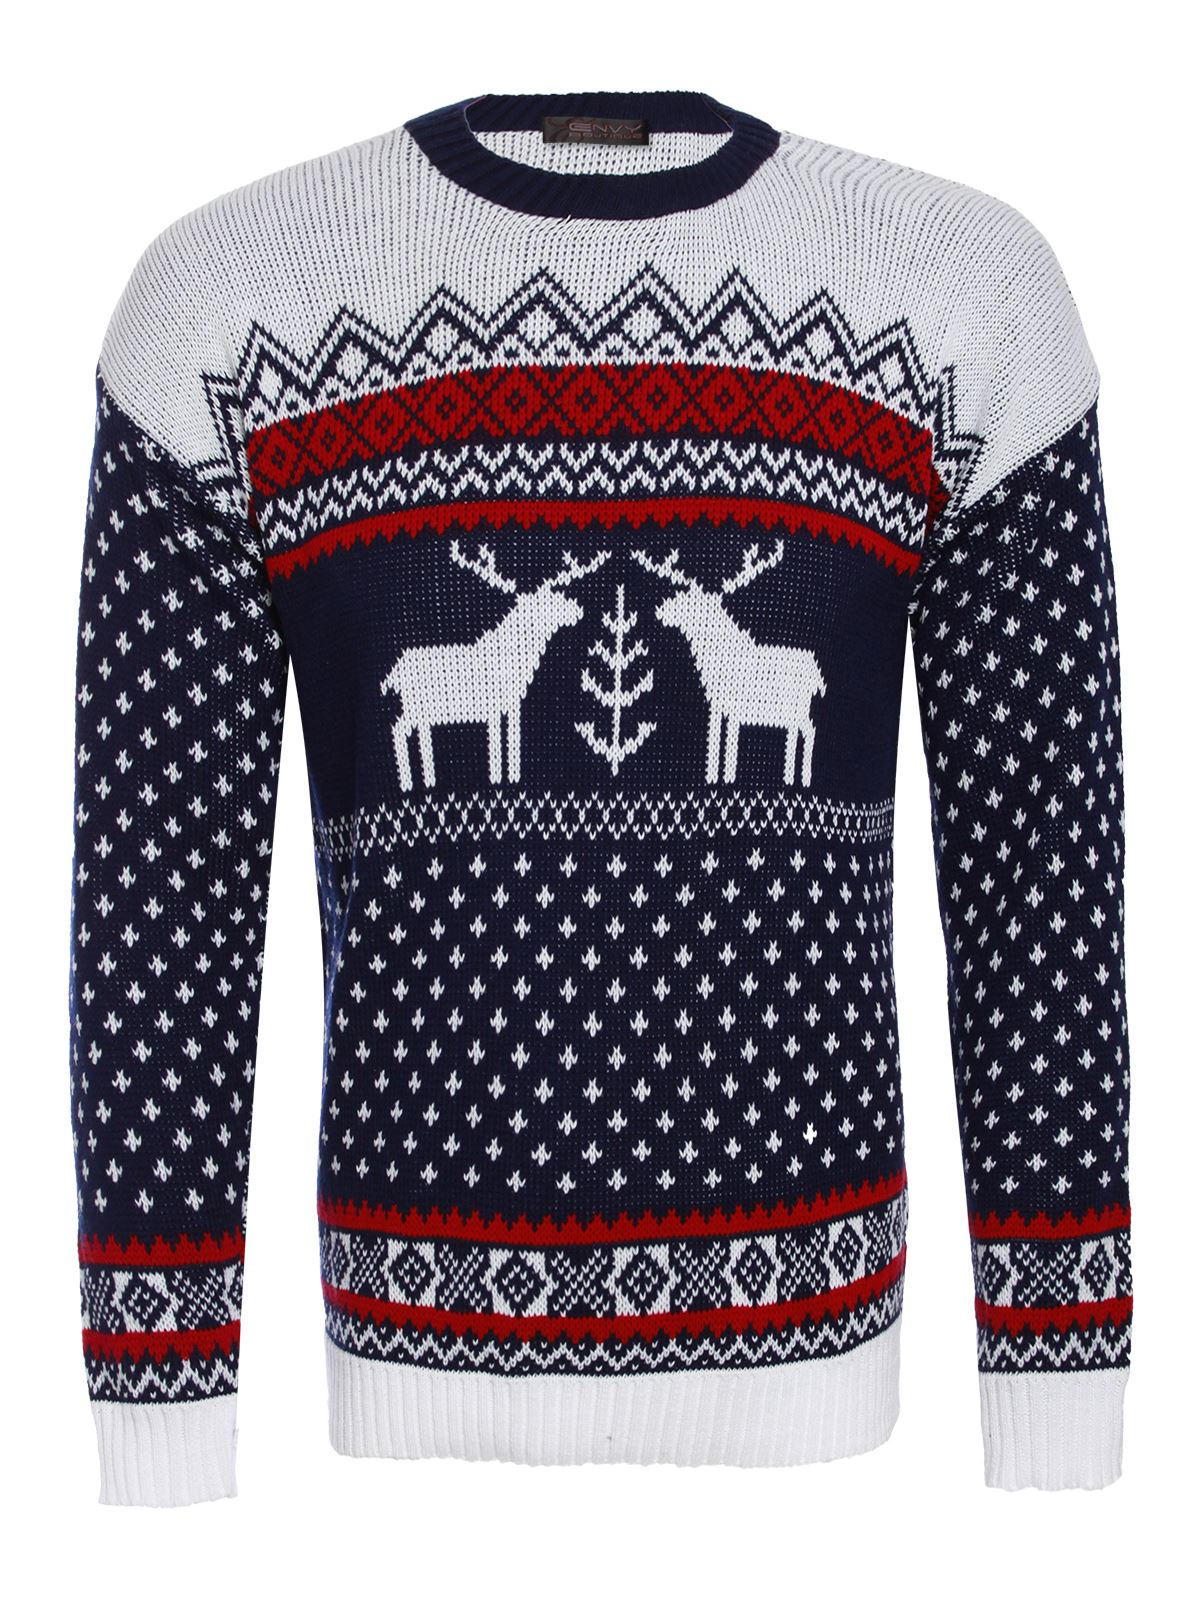 Knitting Patterns For Novelty Christmas Jumpers : Mens Xmas Jumper Novelty Knitted Christmas Reindeer Fairisle Knit Sweater eBay